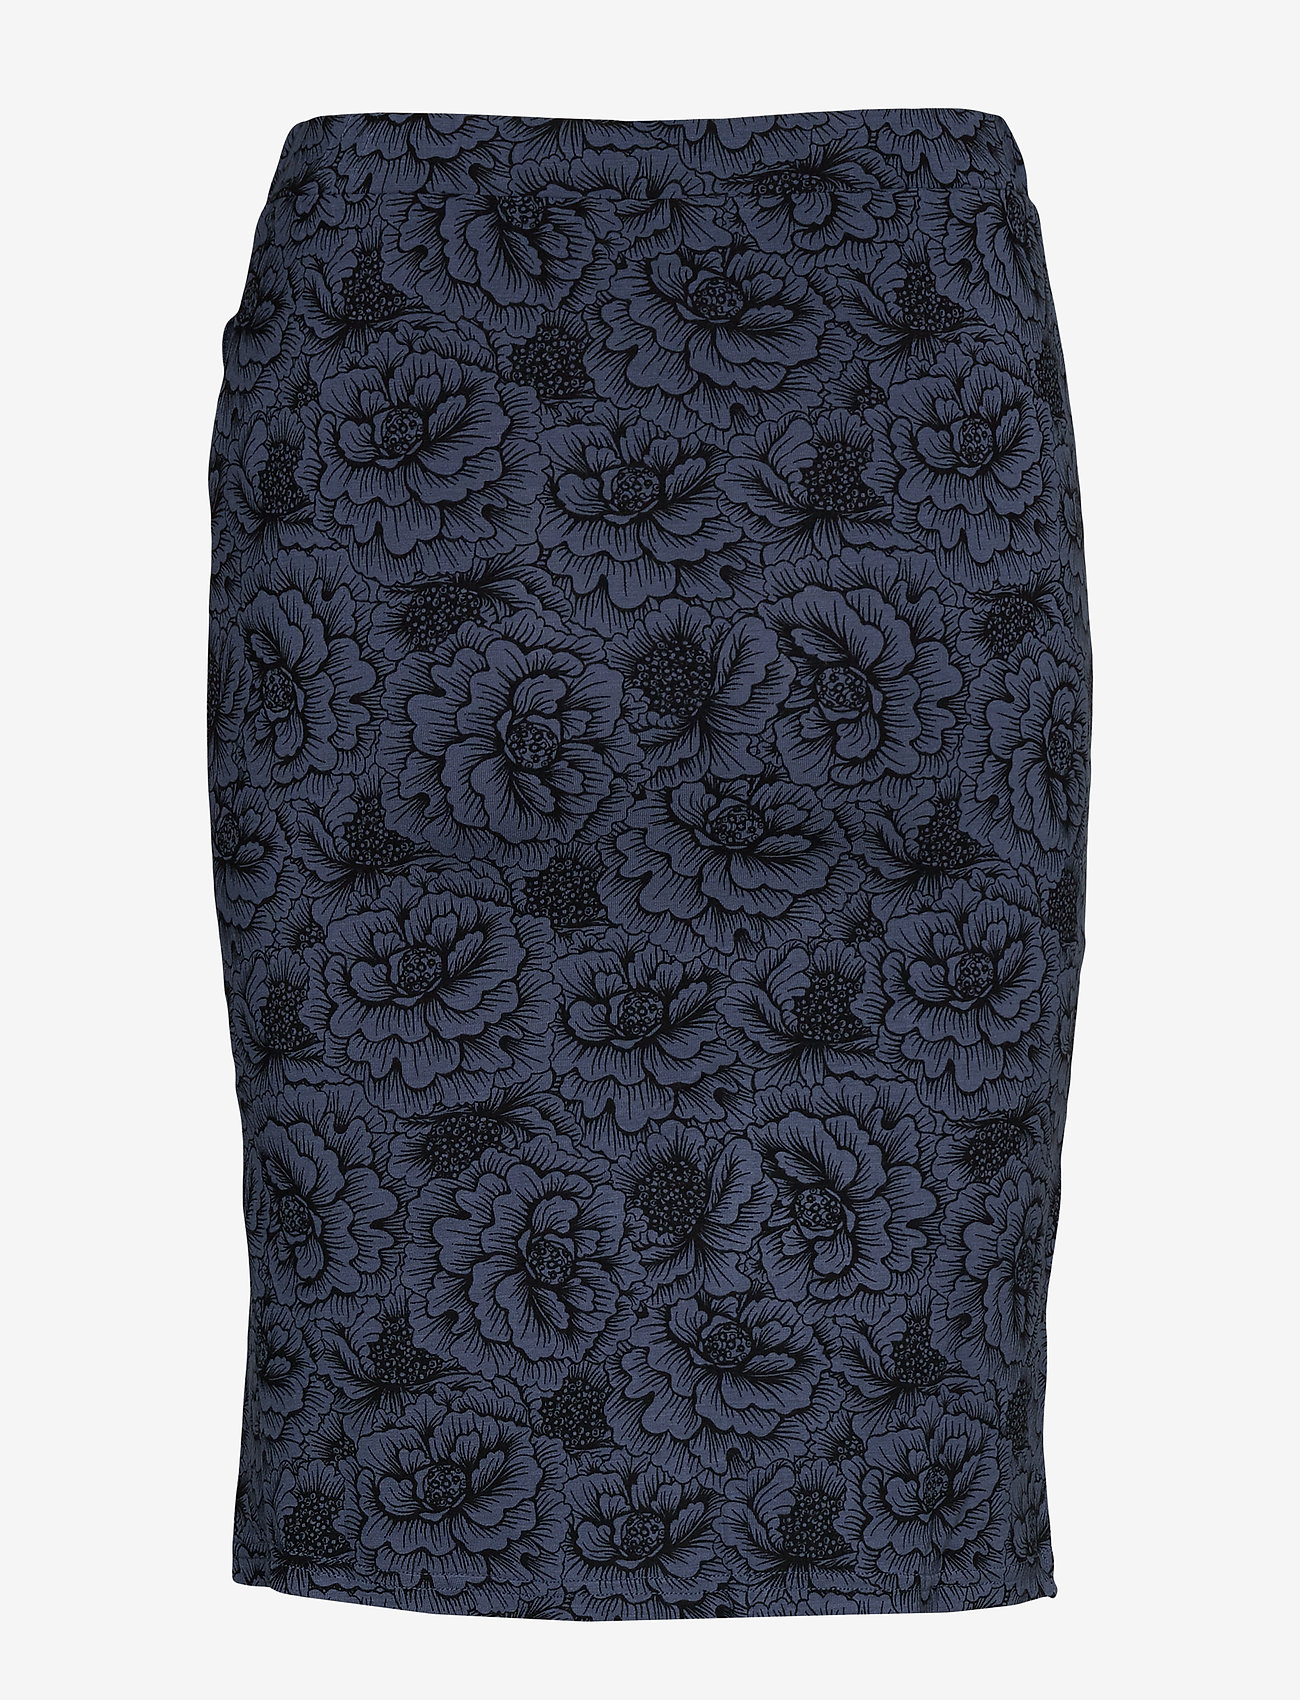 Rosemunde - Skirt - midi - true navy rose print - 1